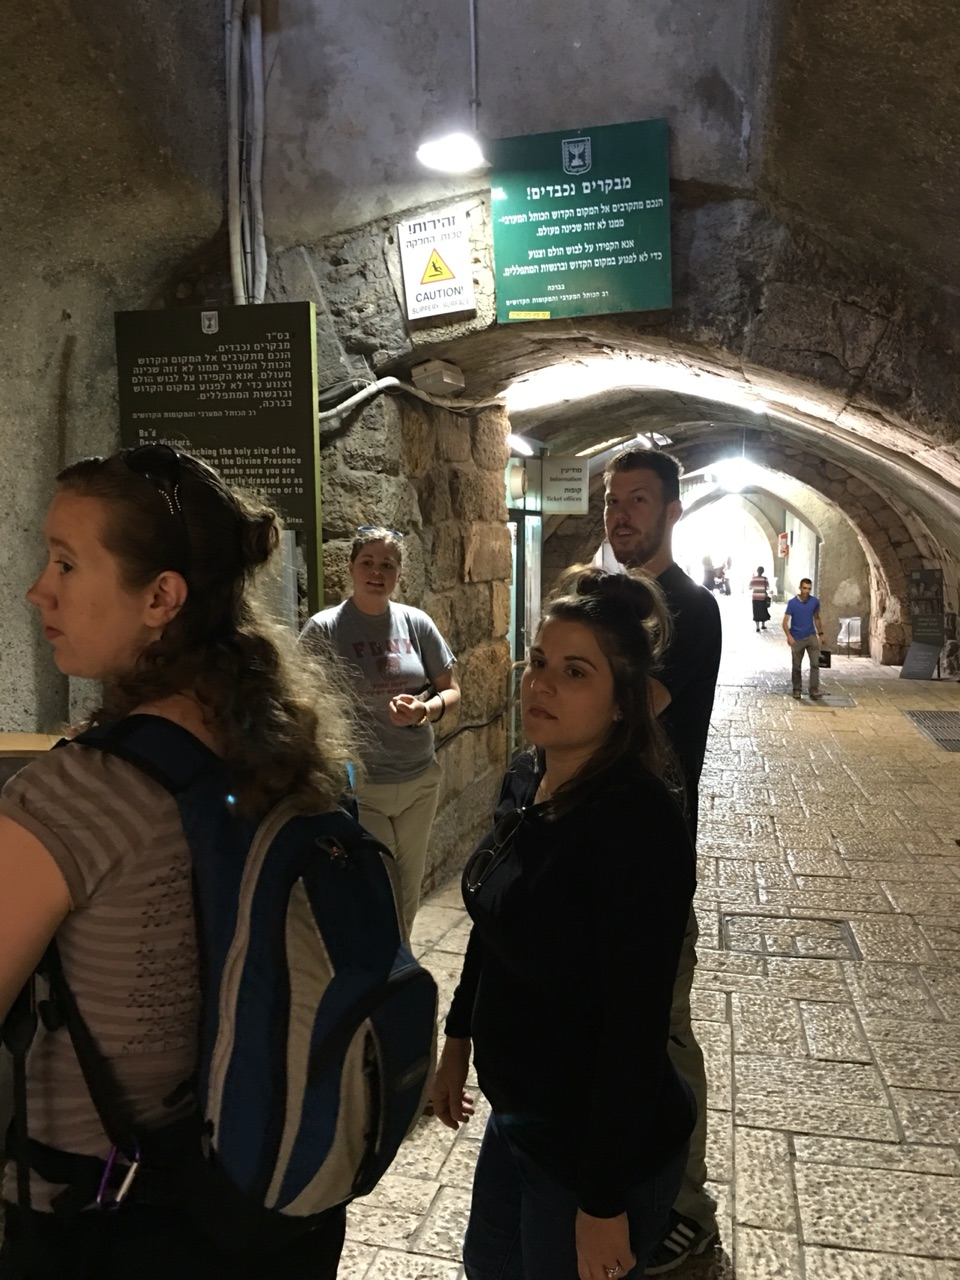 Through security to reach the Western Wall